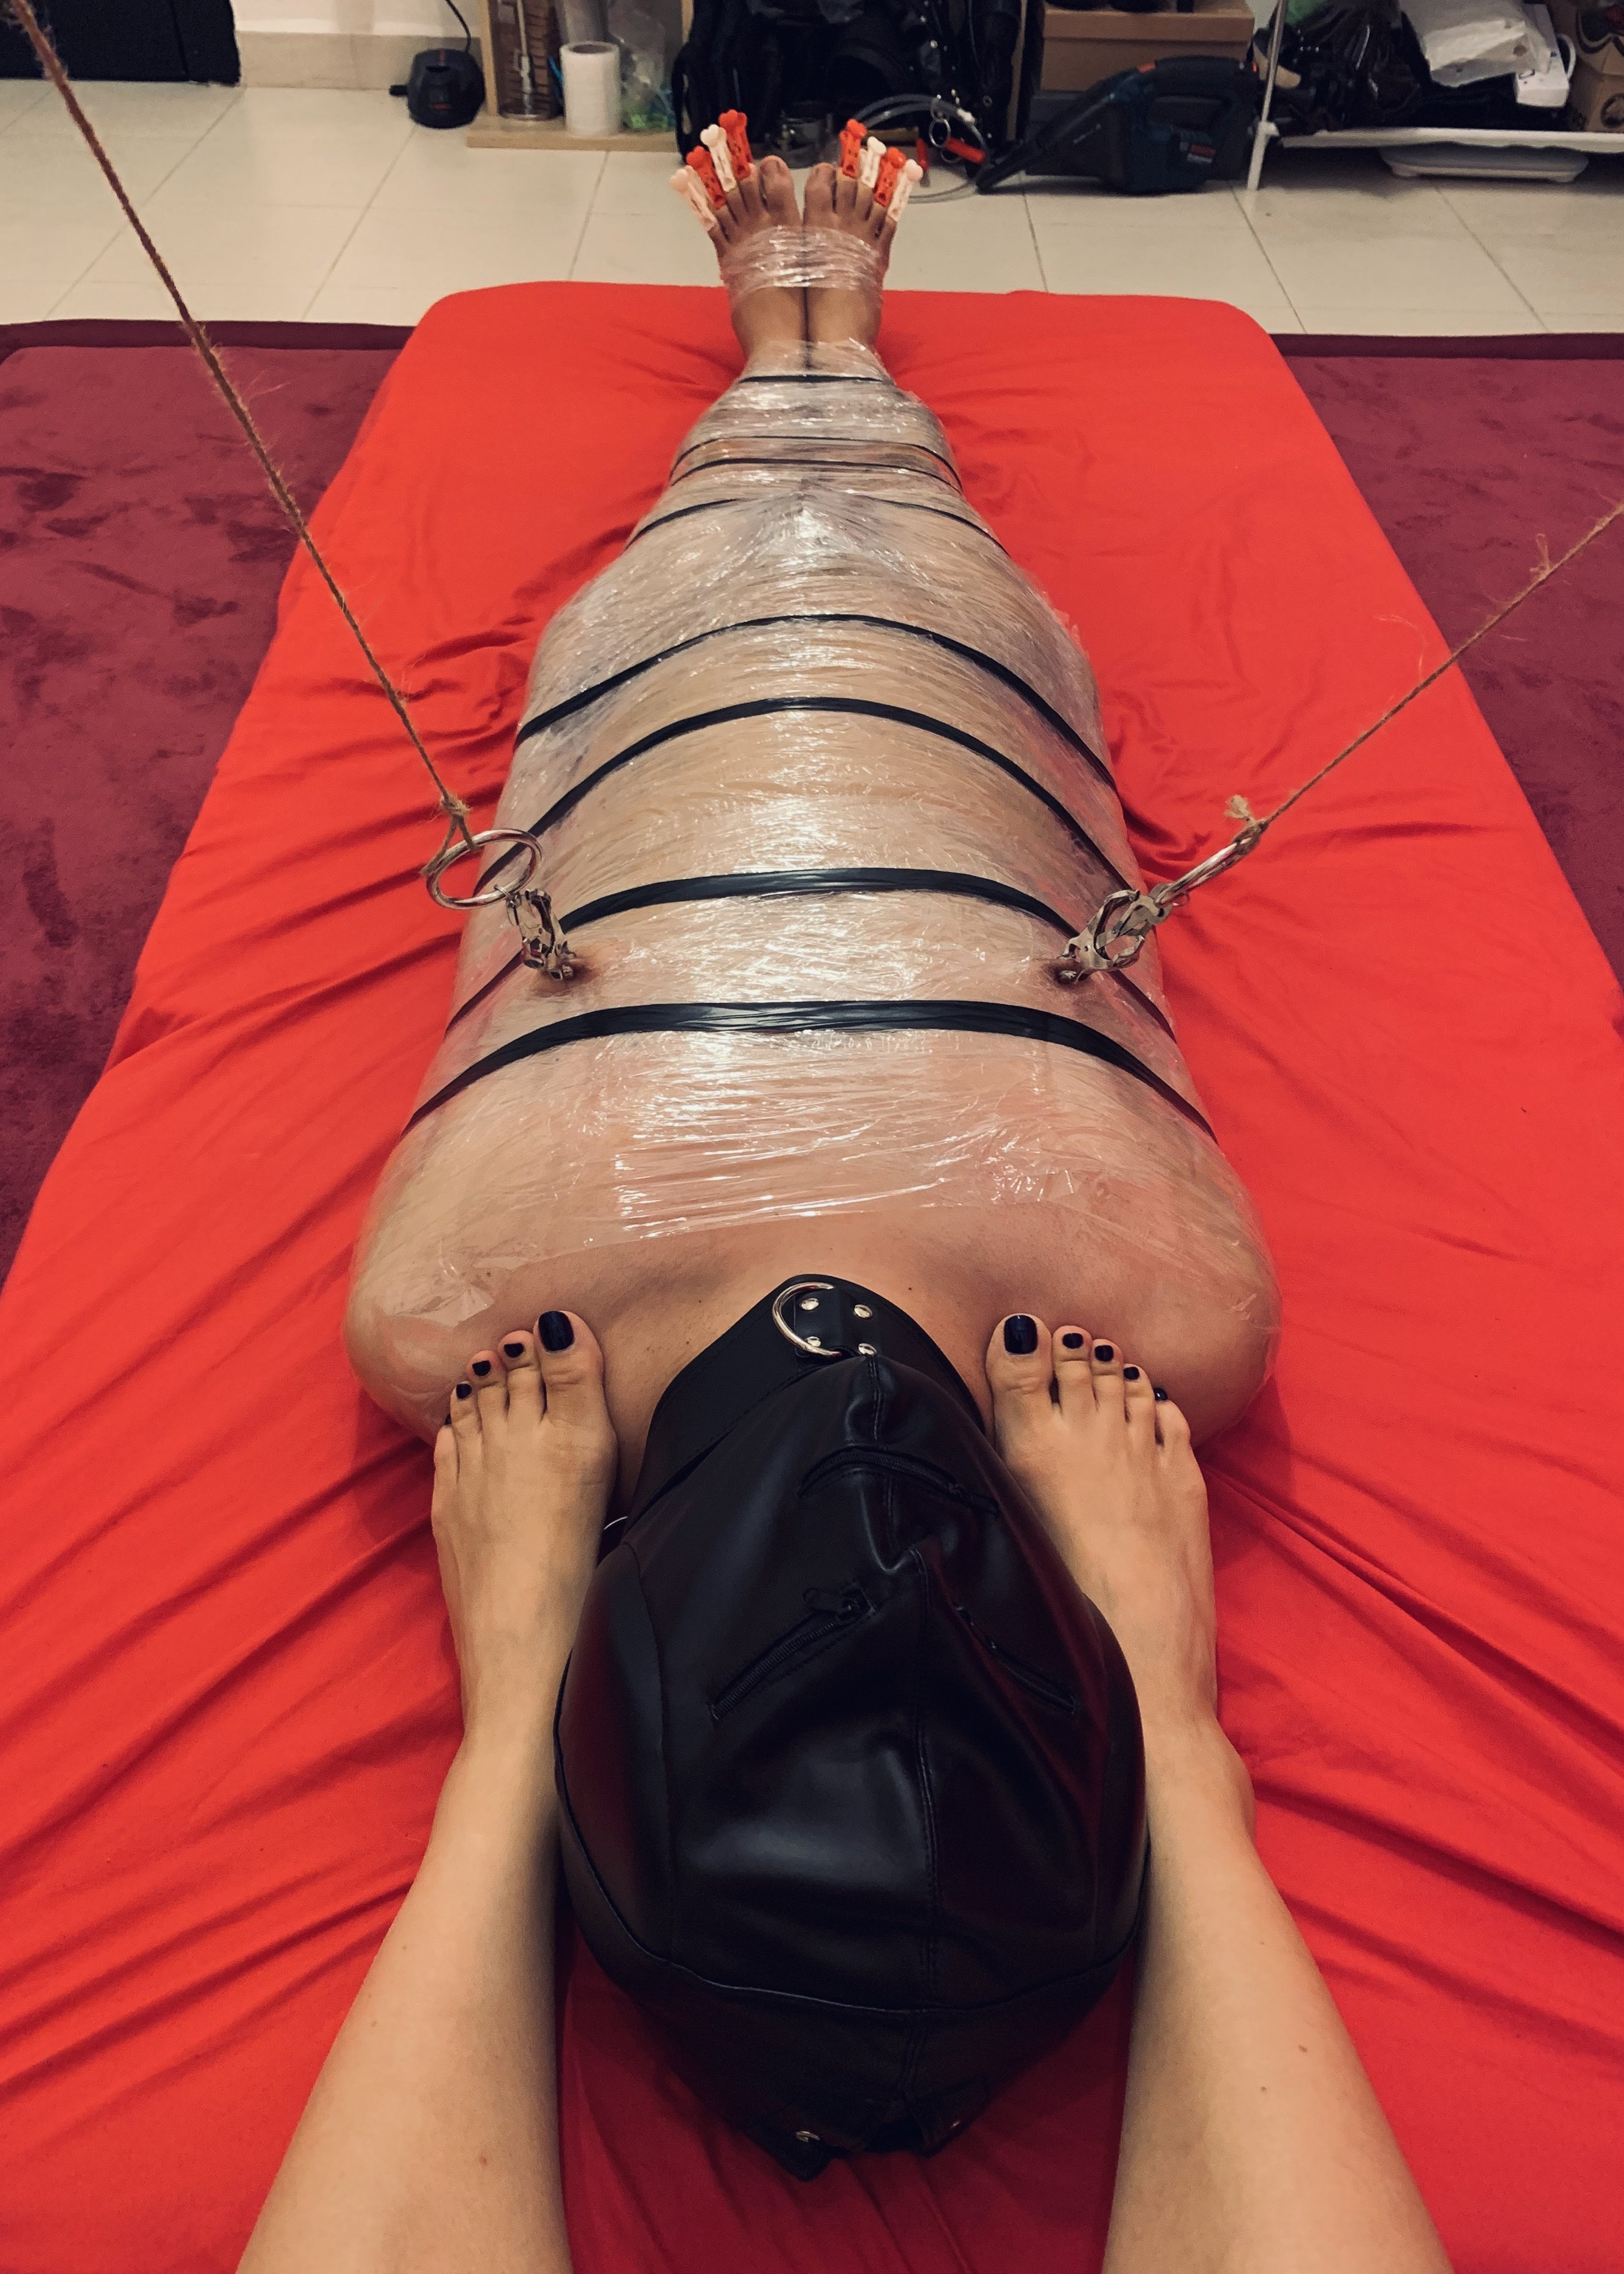 C is mummified in saran wrap, and is sporting a full head padded hood, nipple clamps pulled taut and pegs on his toes. What a champion!